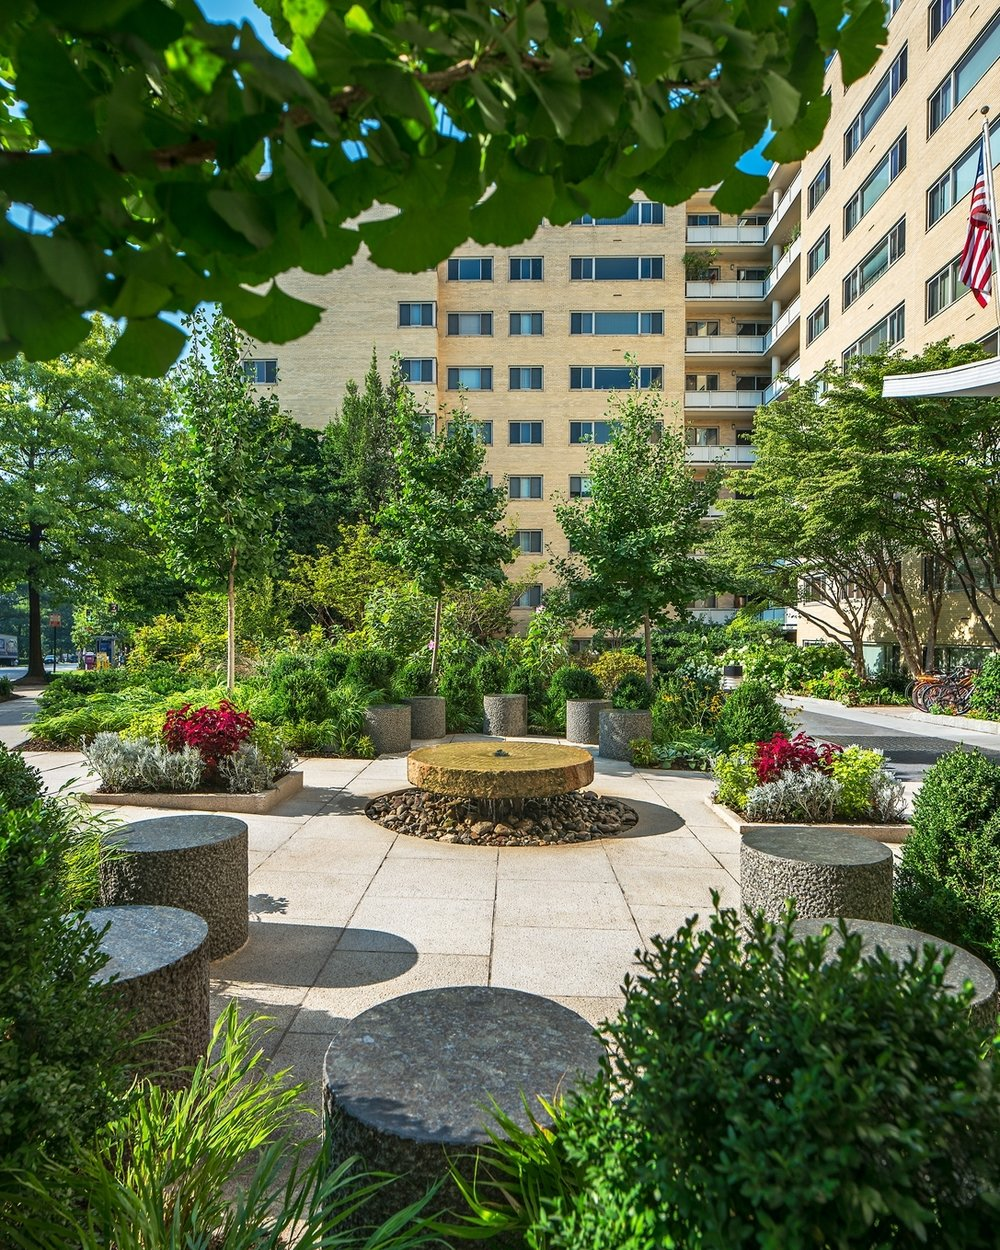 Landscape Architecture Photographs - Washington DC, Maryland, MD, Virginia, VA